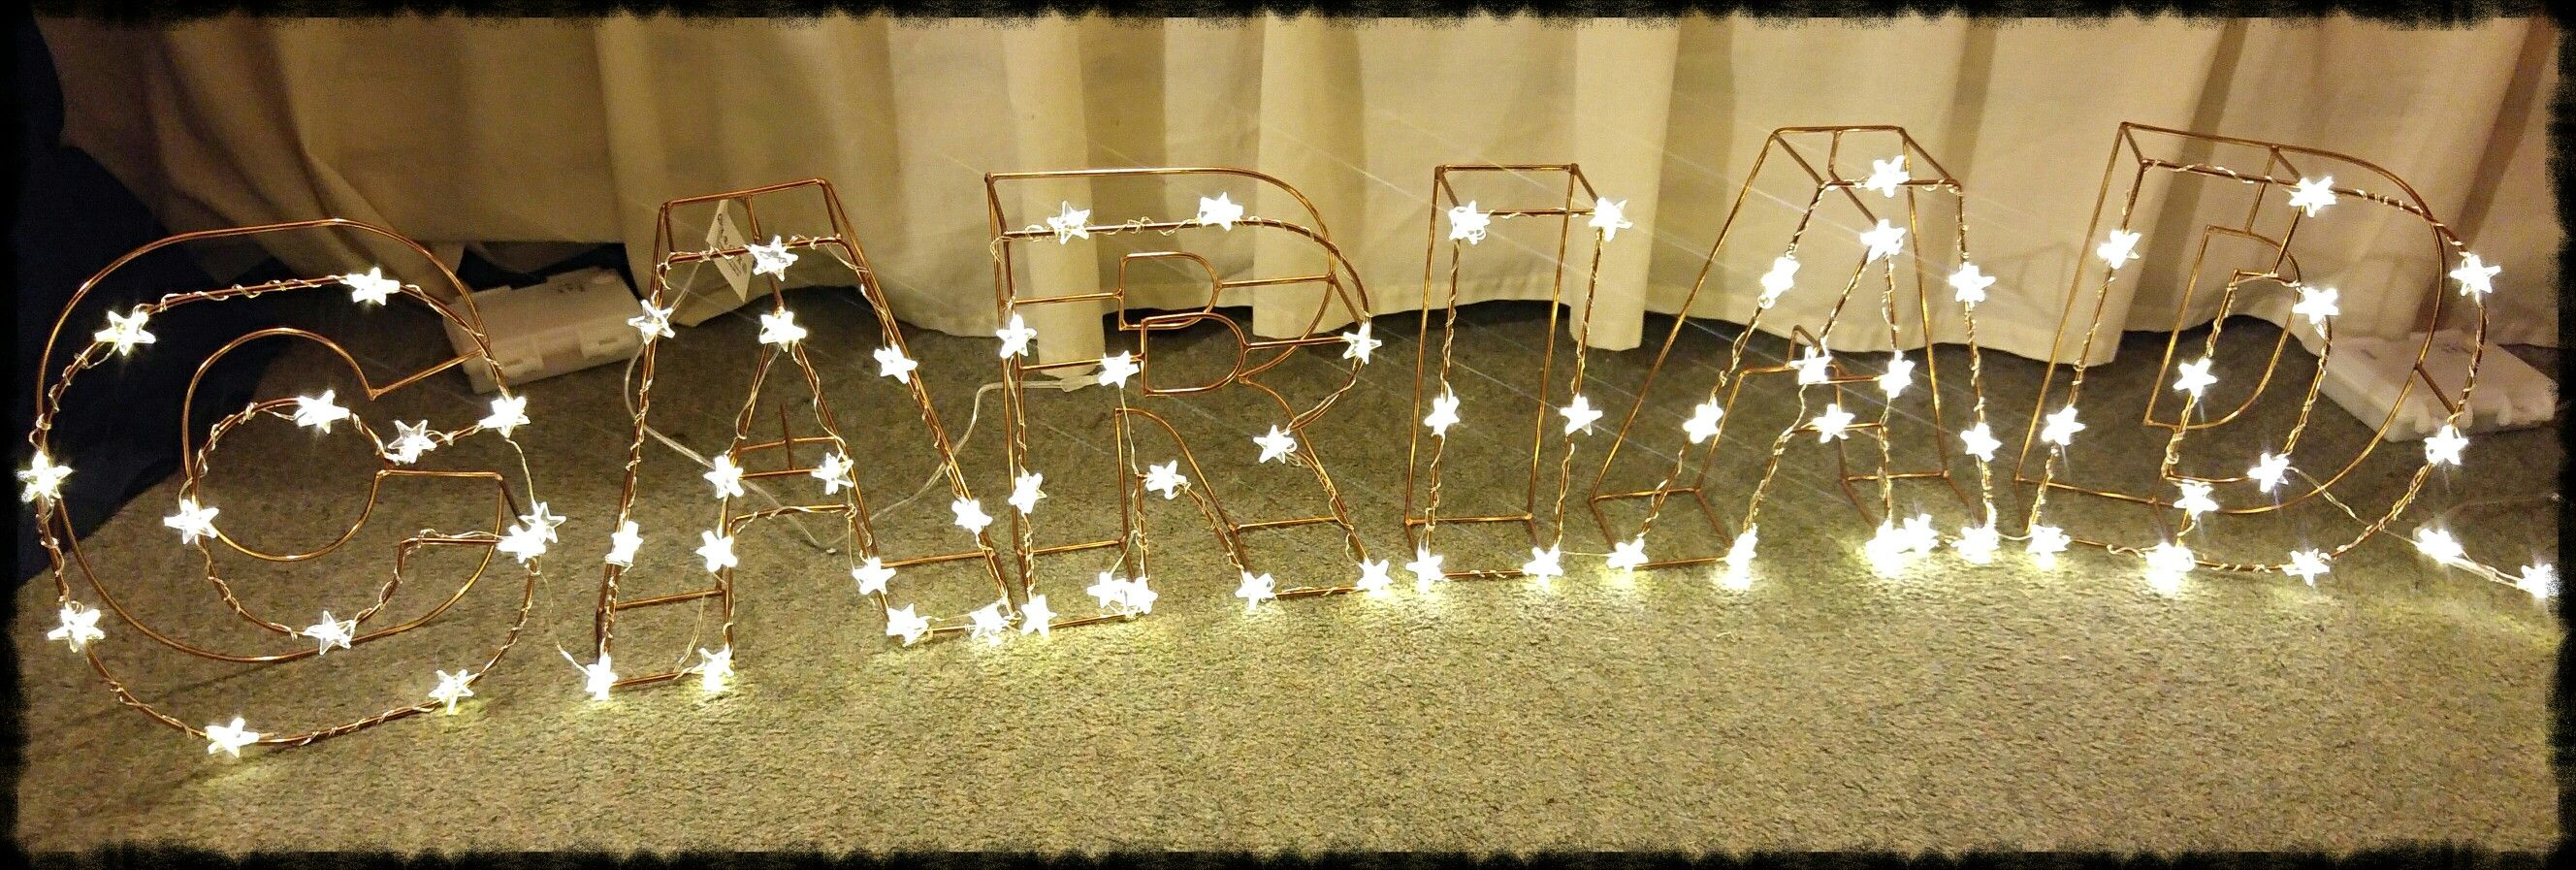 Our Top Table Sign Letters from Hobbycraft, Lights from Lights 4 Fun